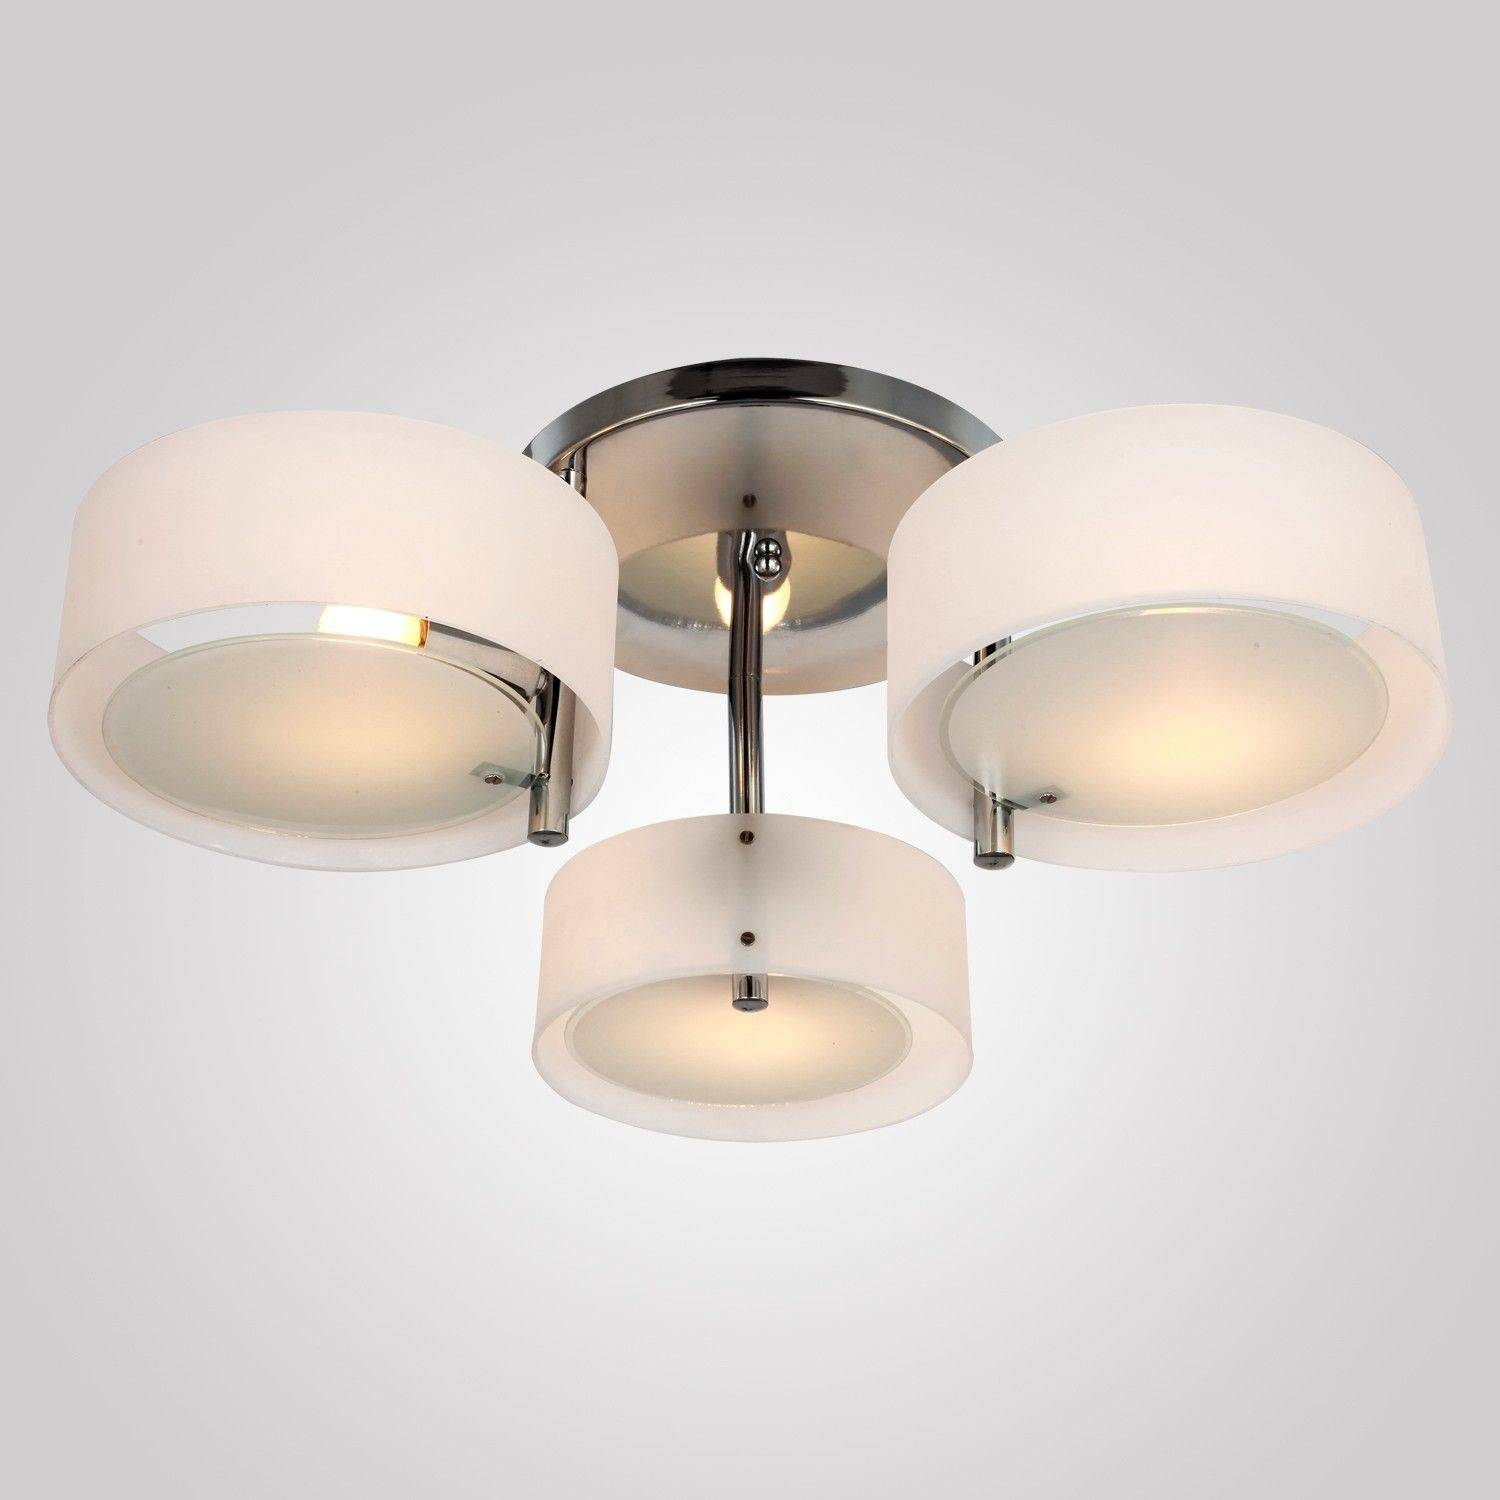 Epic Ceiling Mount Light Fixtures 74 In Clearance Pendant Lighting throughout Clearance Pendant Lighting (Image 4 of 15)